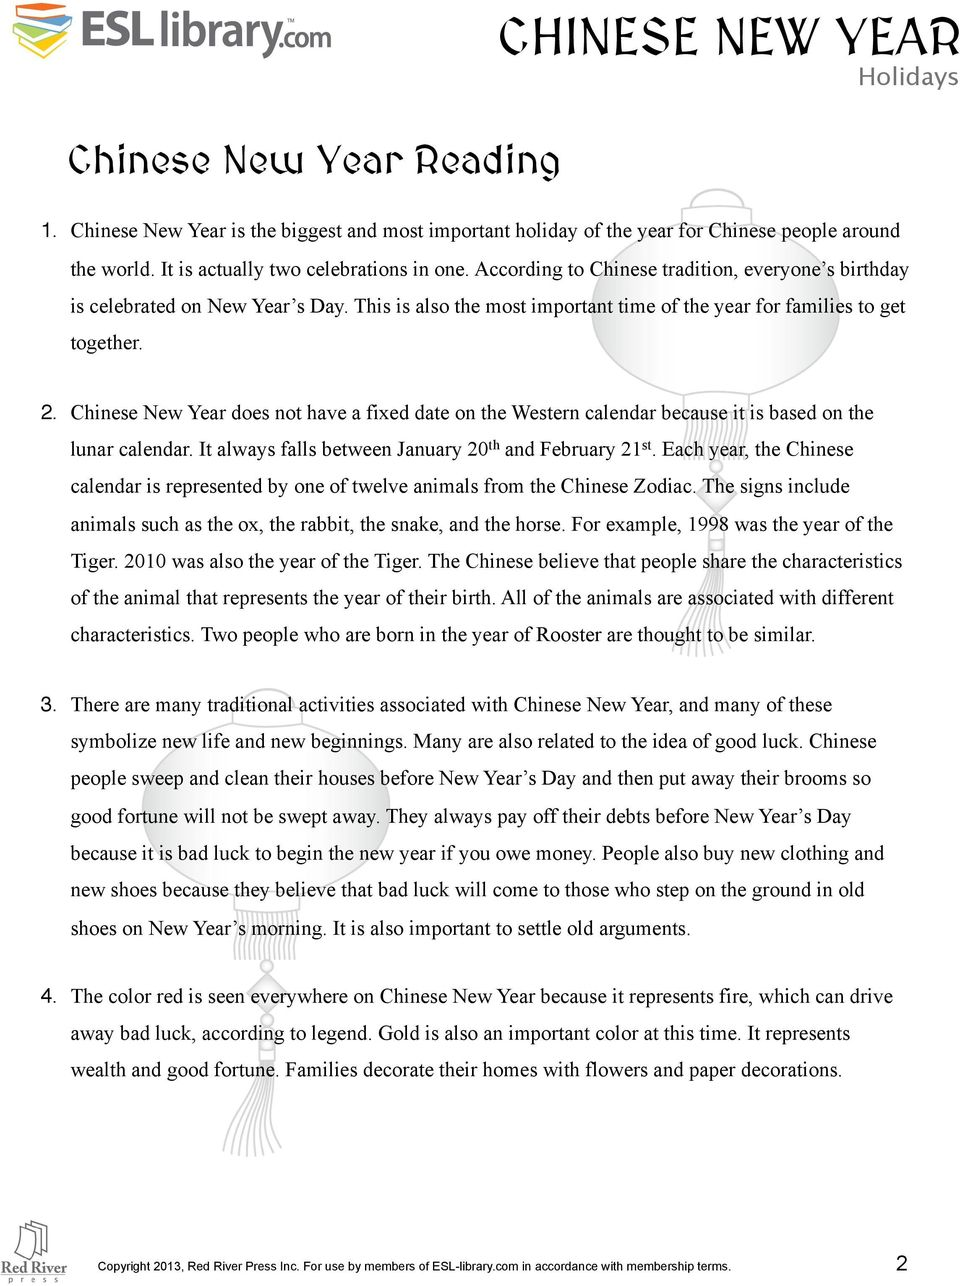 hight resolution of INTERMEDIATE LEVEL CHINESE NEW YEAR LESSON PLAN - PDF Free Download